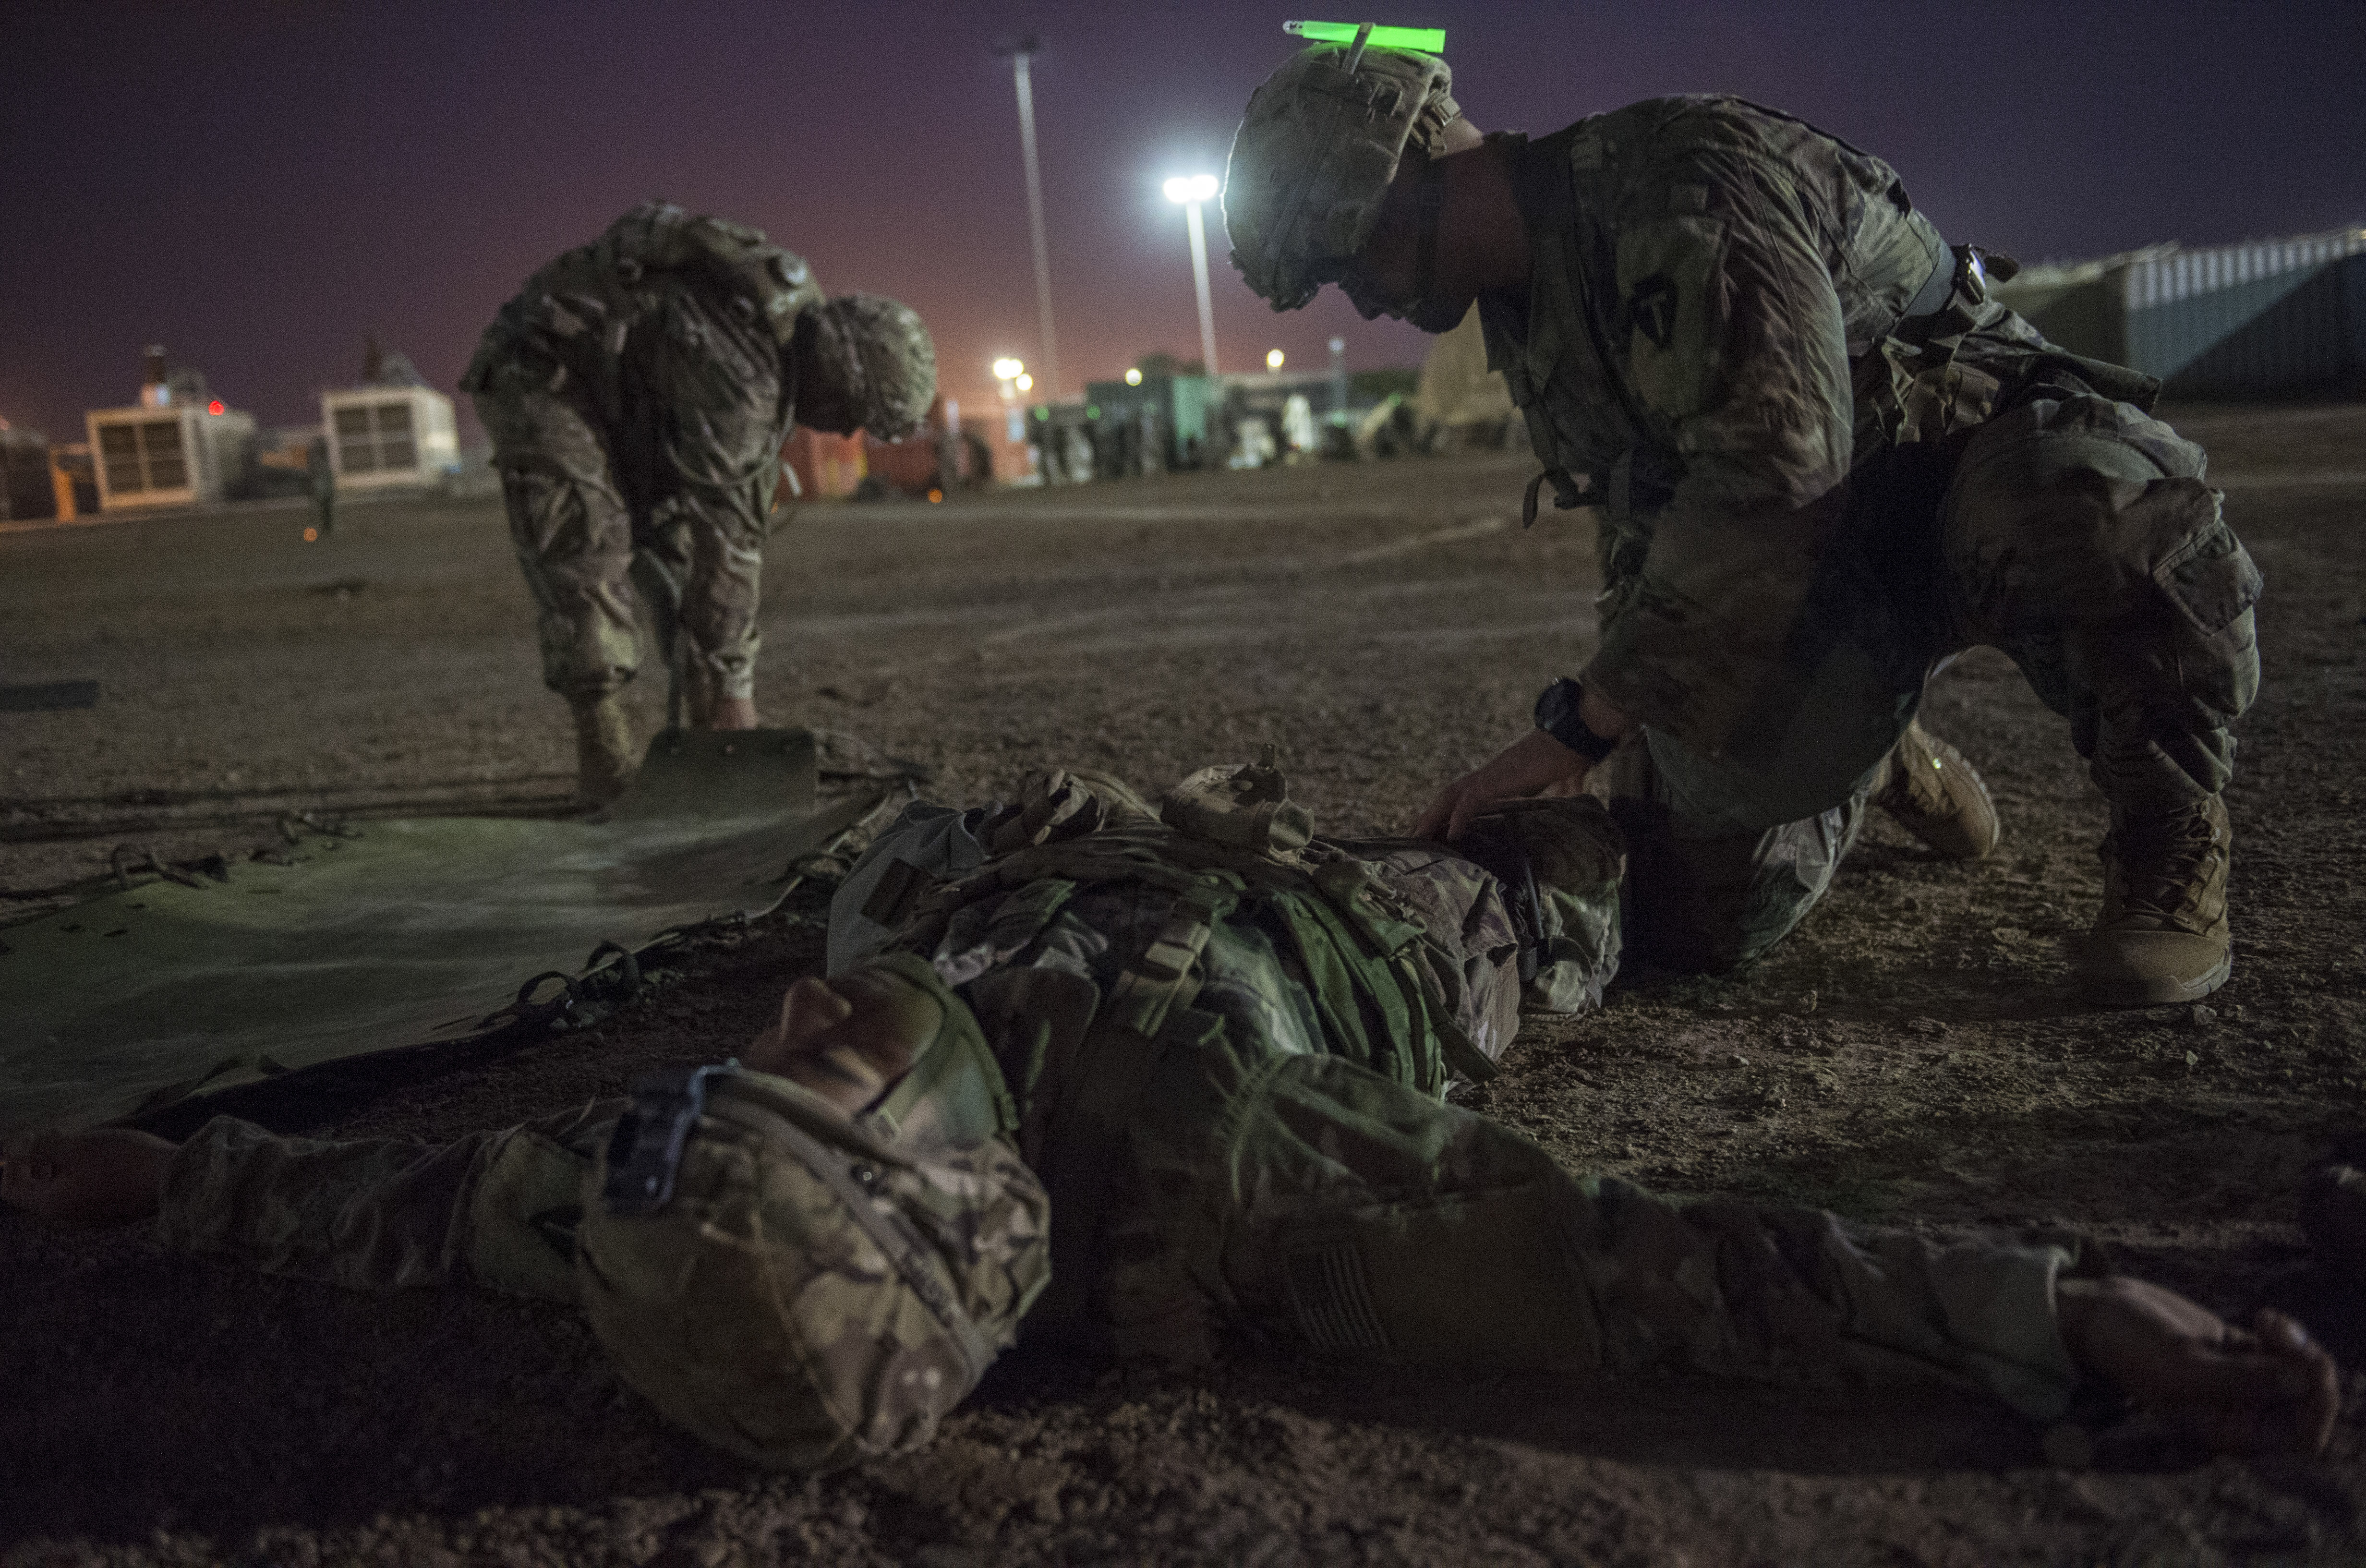 A U.S. Army Soldier assigned to Combined Joint Task Force - Horn of Africa applies a tourniquet to a simulated casualty during a task that requires the evacuation and treatment of a casualty, part of an Expert Infantryman Badge evaluation at Camp Lemonnier, Djibouti, Feb. 2, 2018. After two weeks of training and five days of testing, 50 Soldiers completed the process to earn the coveted special skills badge that requires Soldiers to perform an Army Physical Fitness Test, day and night land navigation, a 12-mile forced march, and 30 individual tasks covering weapons, medical, and security patrol skills. (U.S. Air Force photo by Staff Sgt. Timothy Moore)